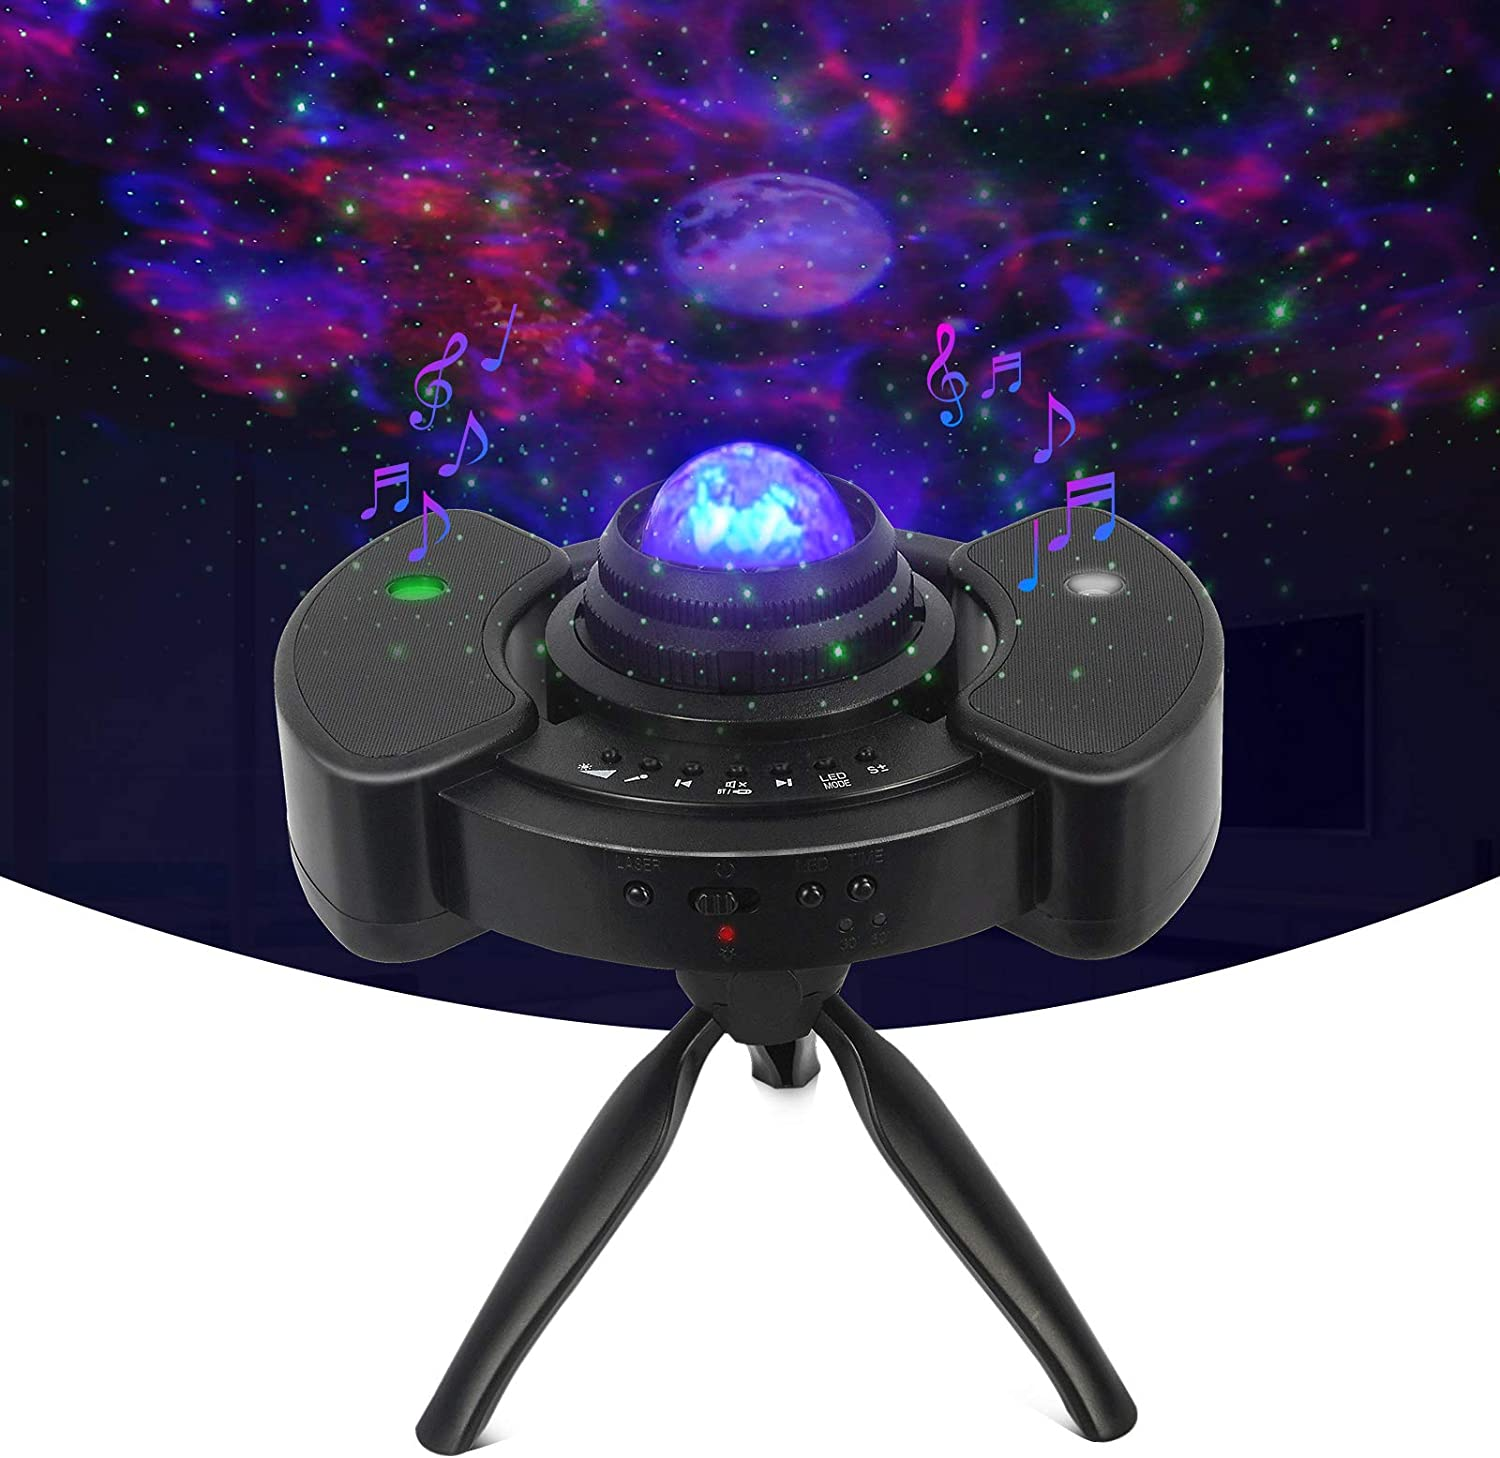 Star Projector with Adjustable Tripod Stand, 4 in 1 Starry Night Light Projector with LED Moon, Sky Clound & Moving Ocean, Built-in Dual Stereo Speaker for Bedroom Decor, Kids, Party, Gift